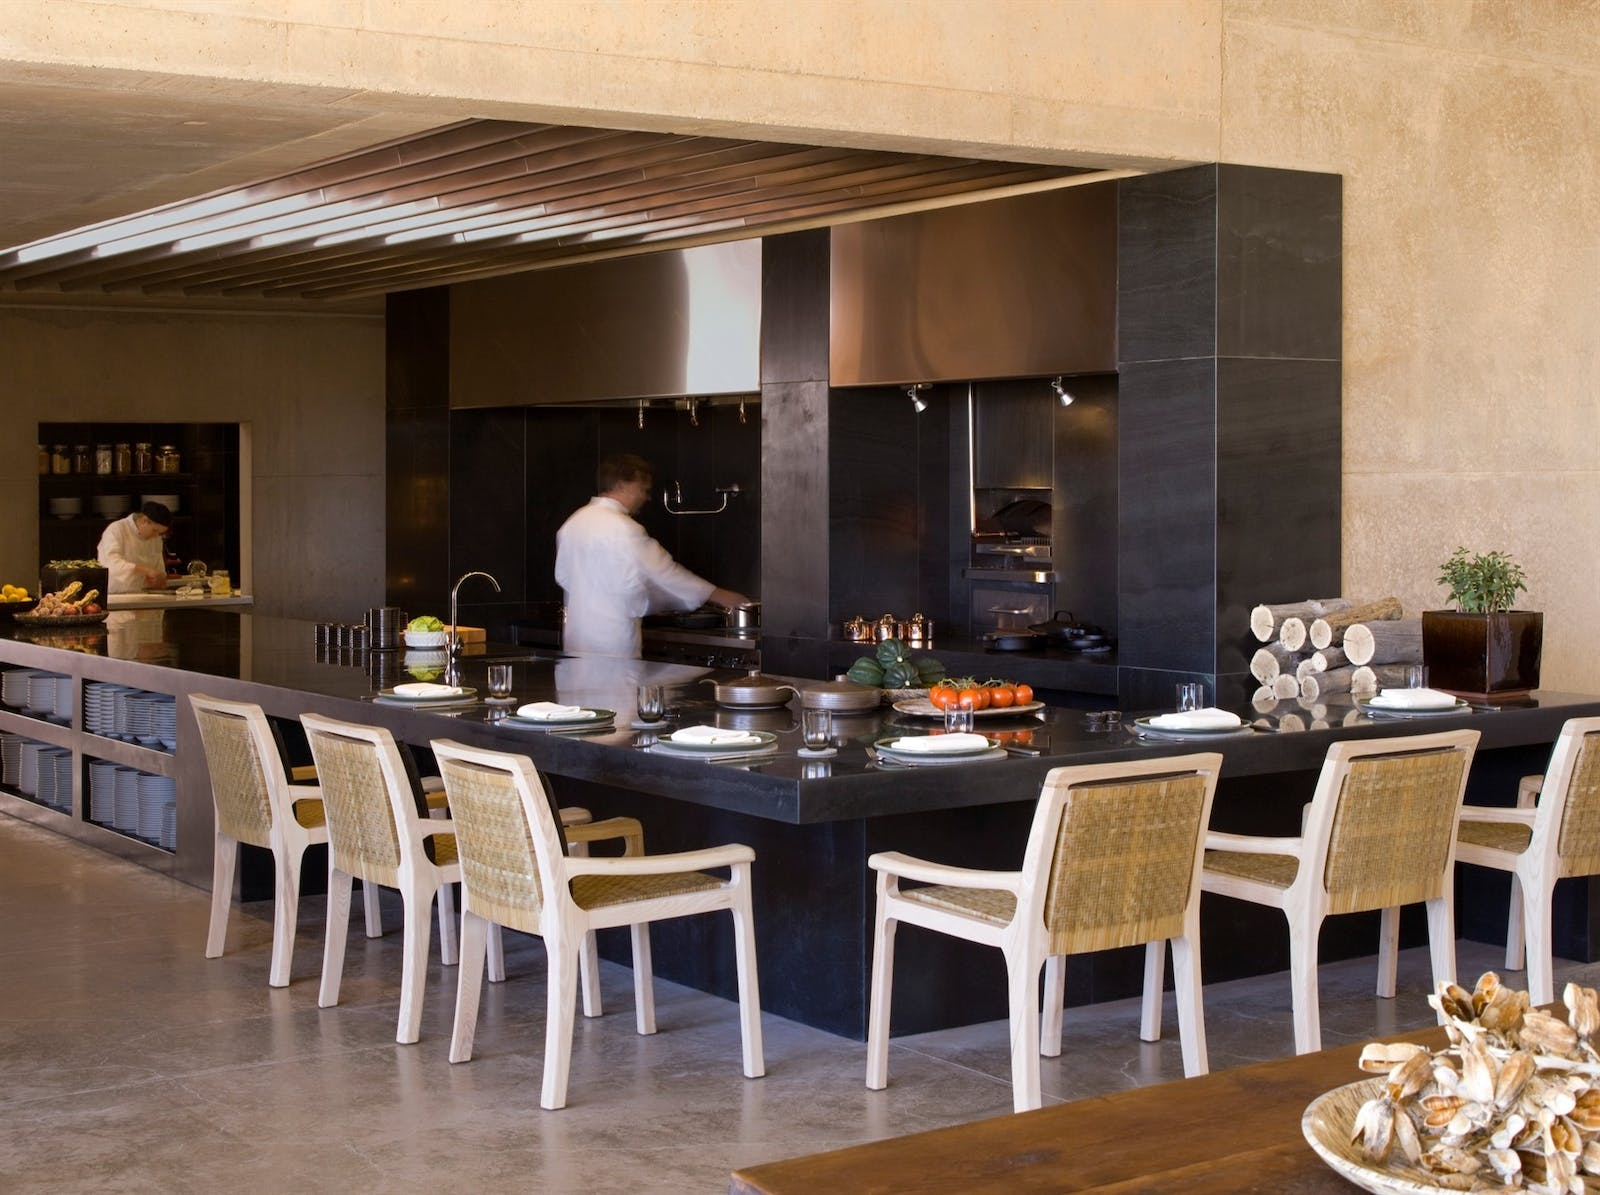 Open Kitchen at Amangiri, Canyon Point